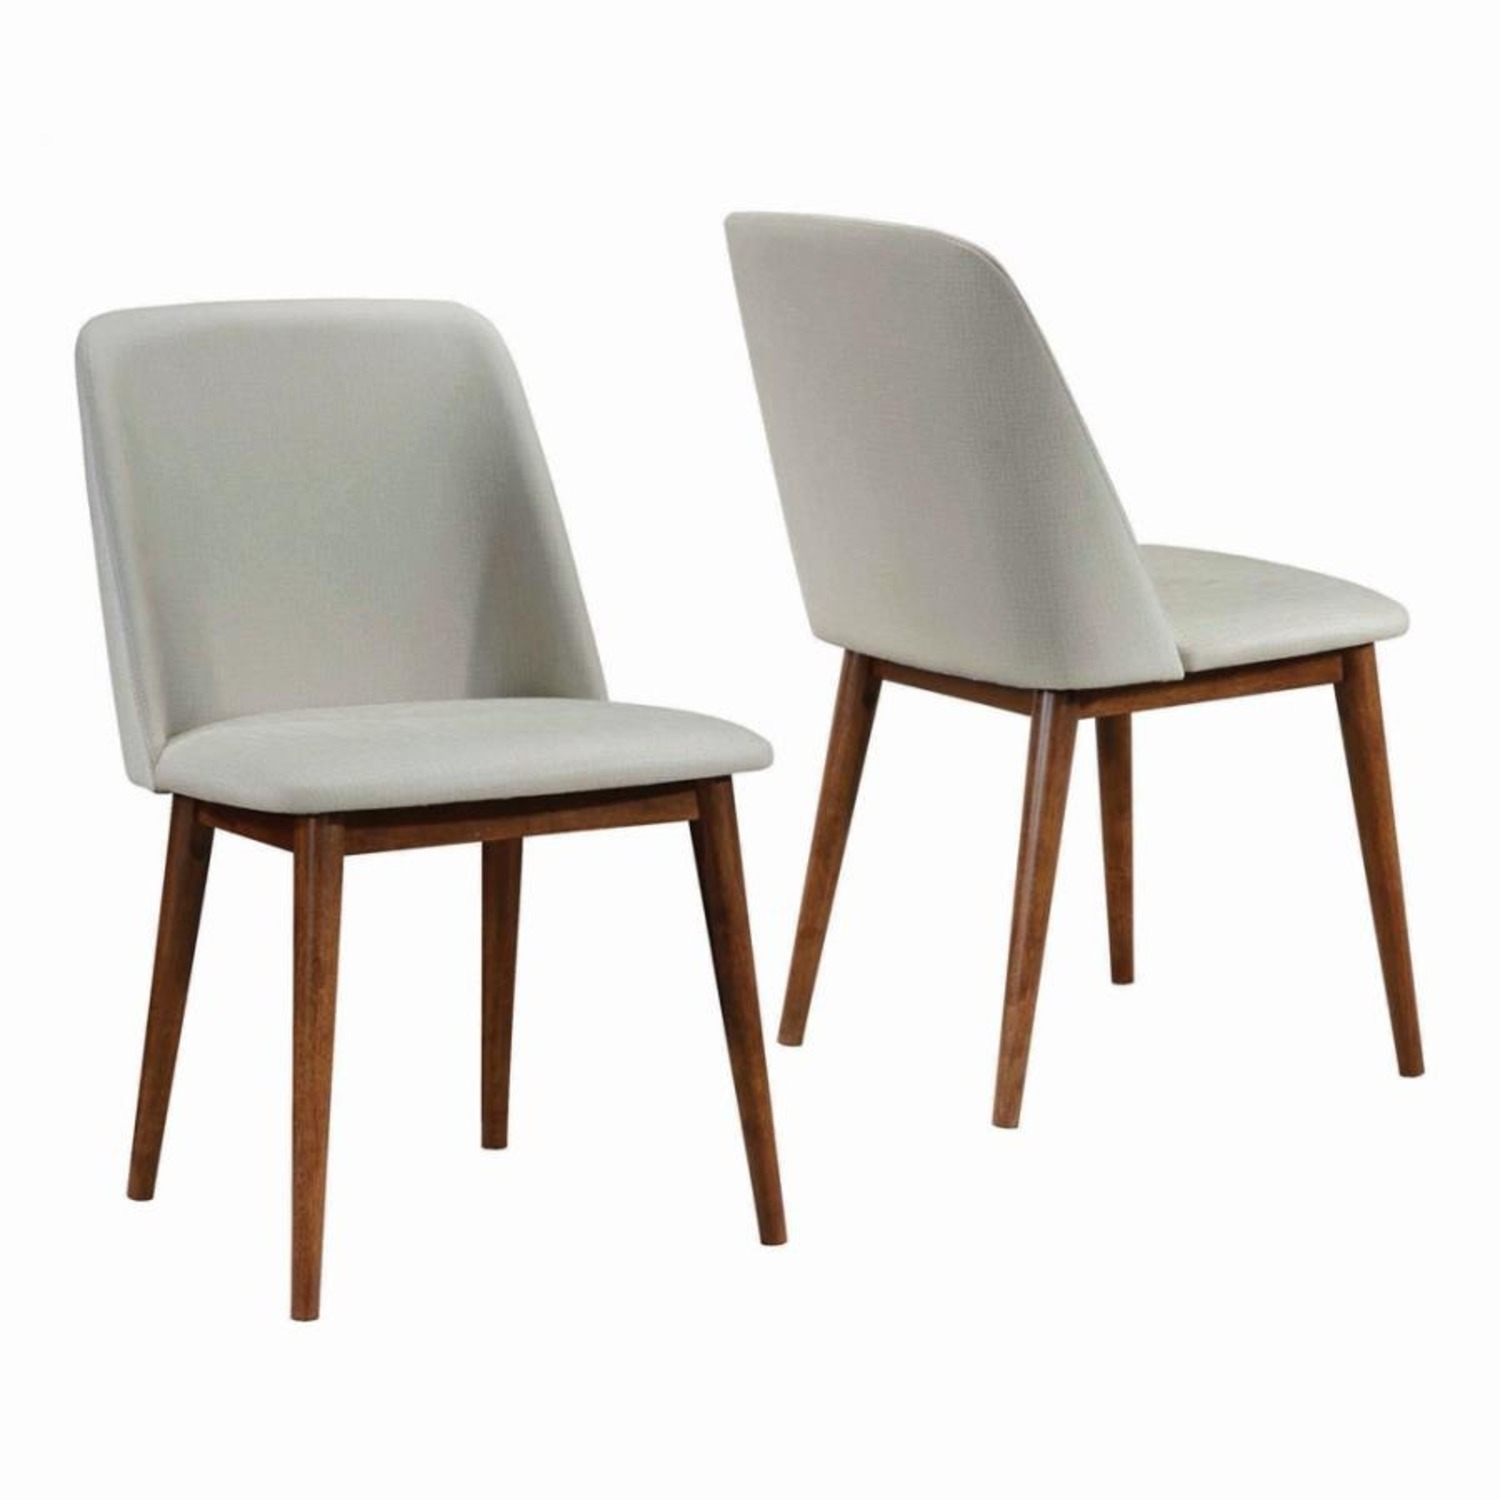 Modern Side Chair In Light Grey Fabric Finish - image-1